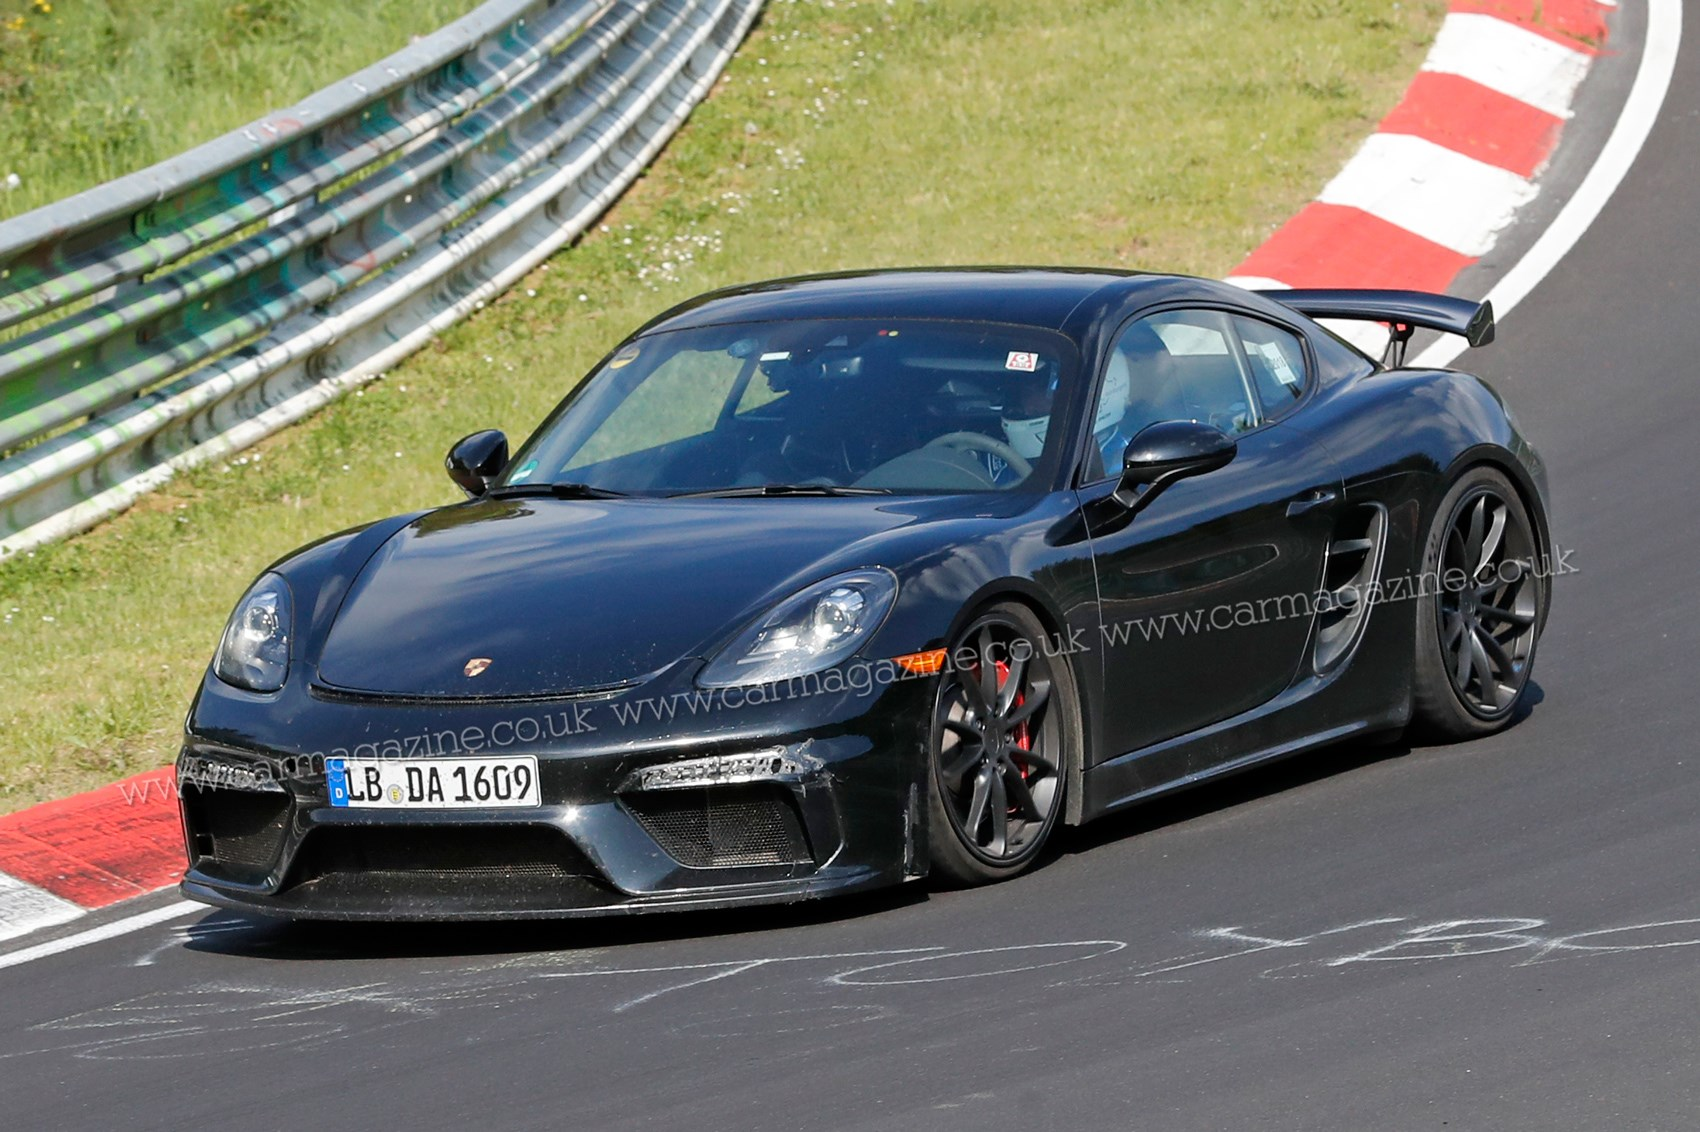 New Porsche Cayman Gt4 Fresh Pictures Of Testing Mule Car Magazine